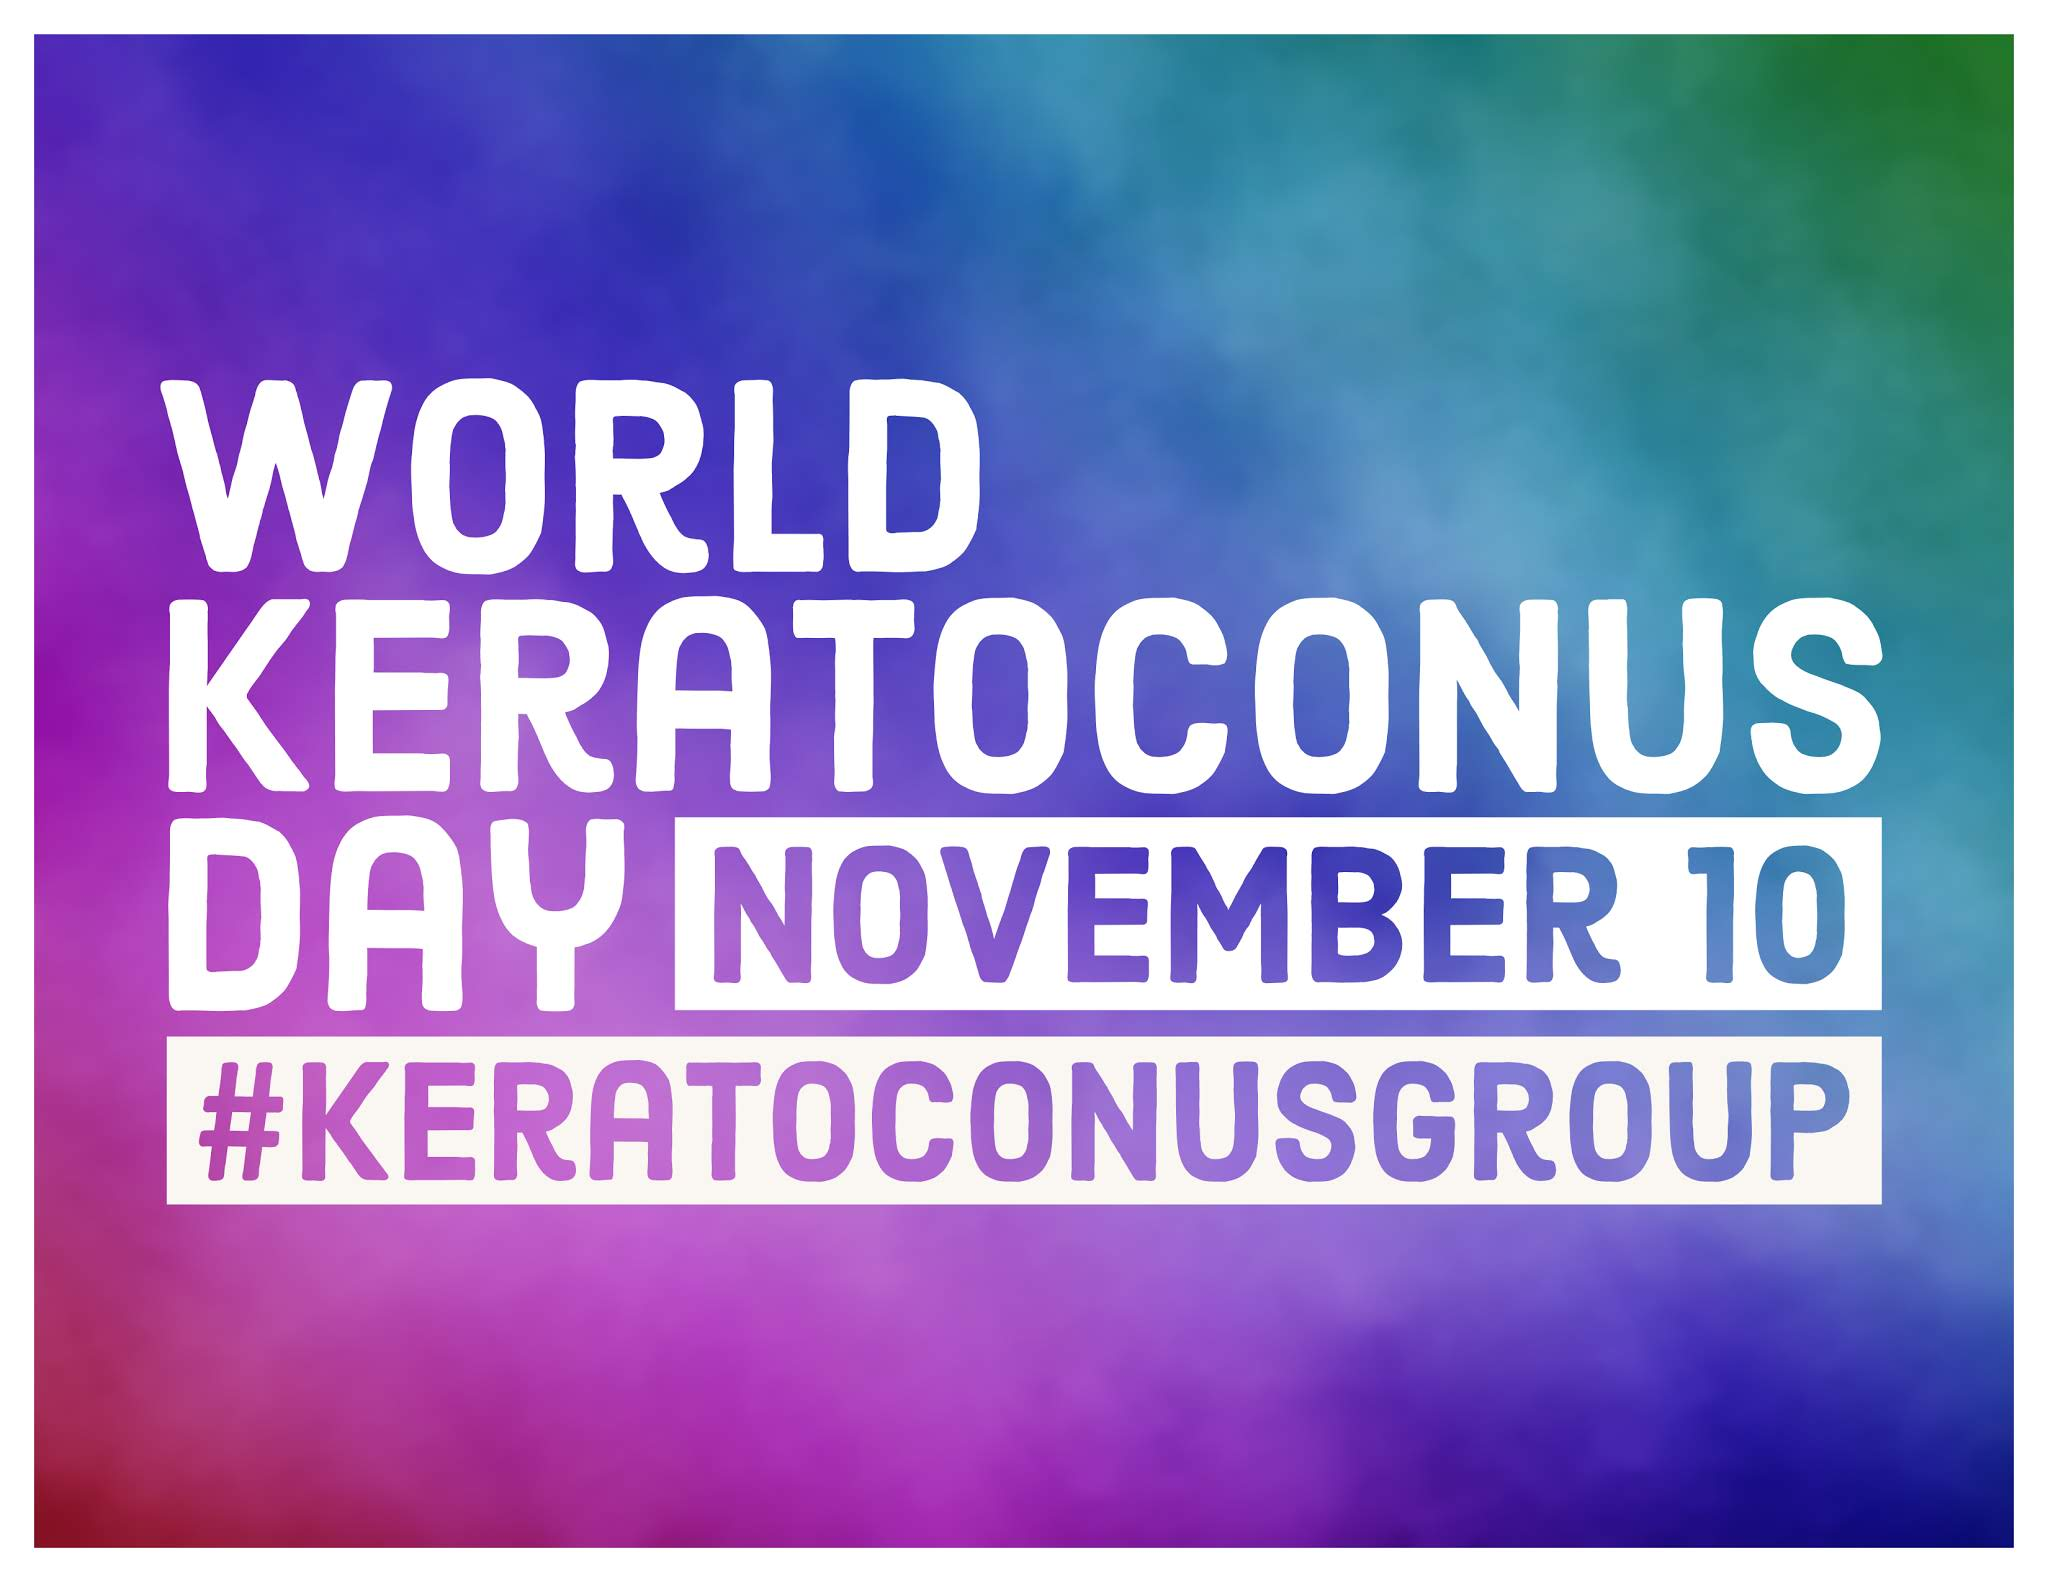 National Keratoconus Day 2019 Poster